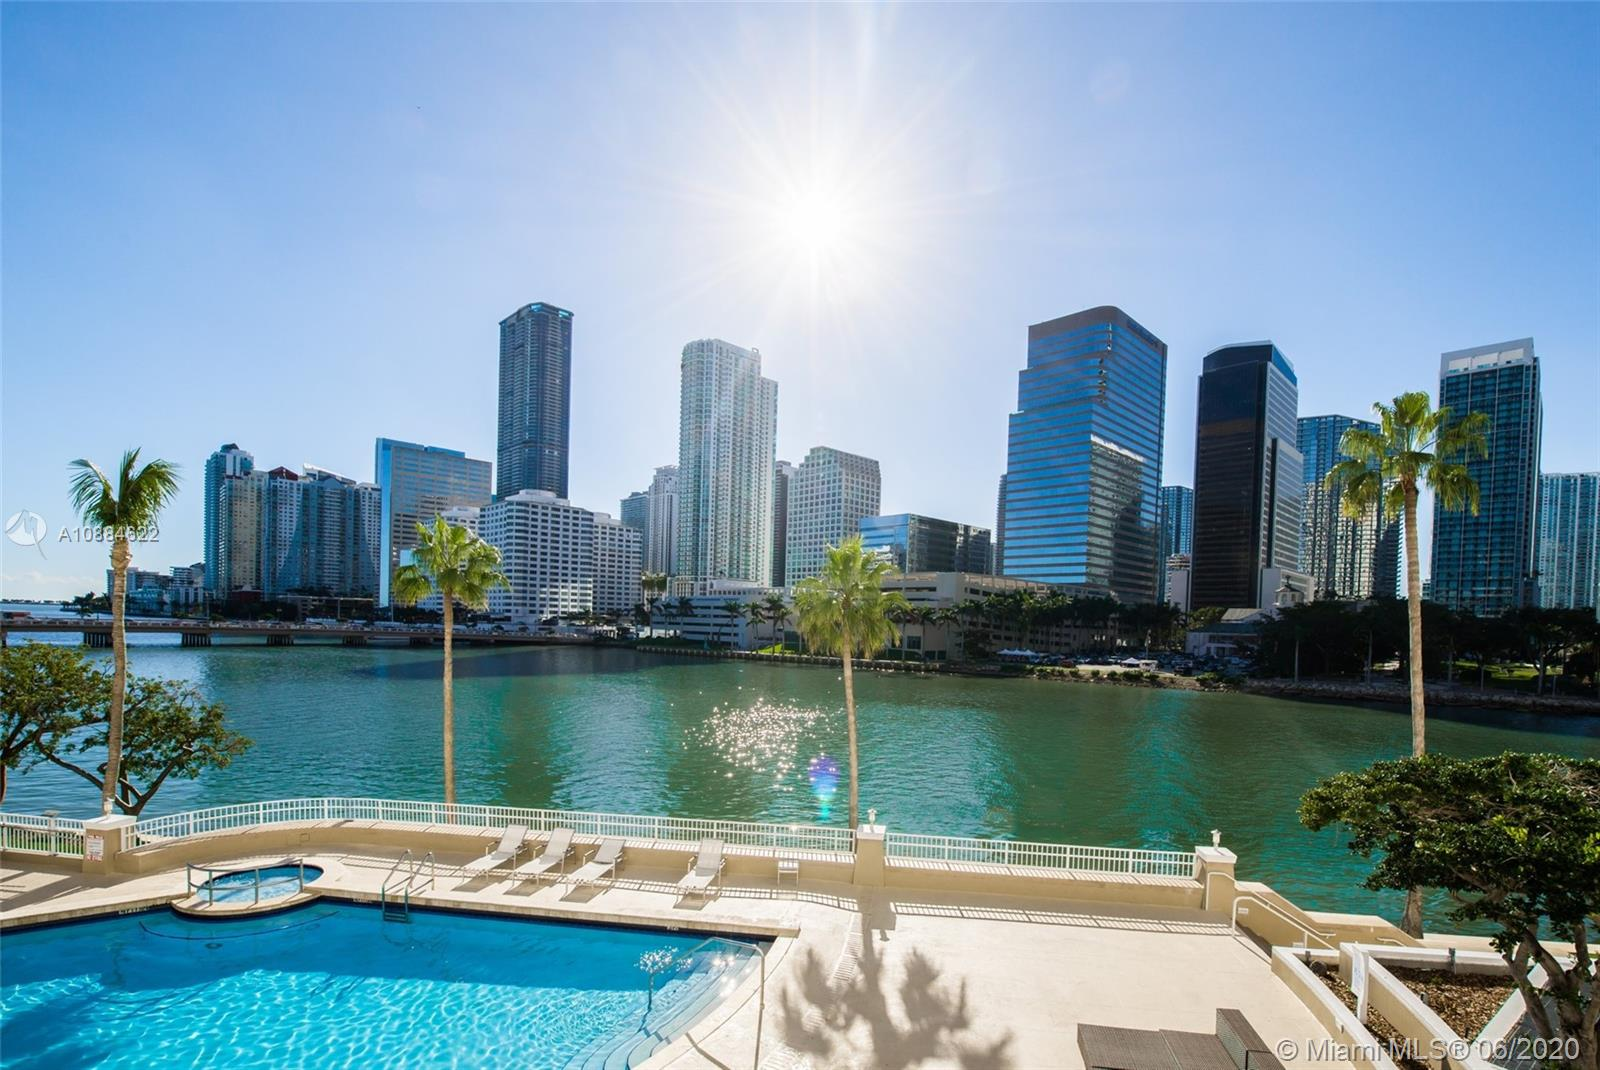 Courvoisier Courts #1707 - 701 Brickell Key Blvd #1707, Miami, FL 33131